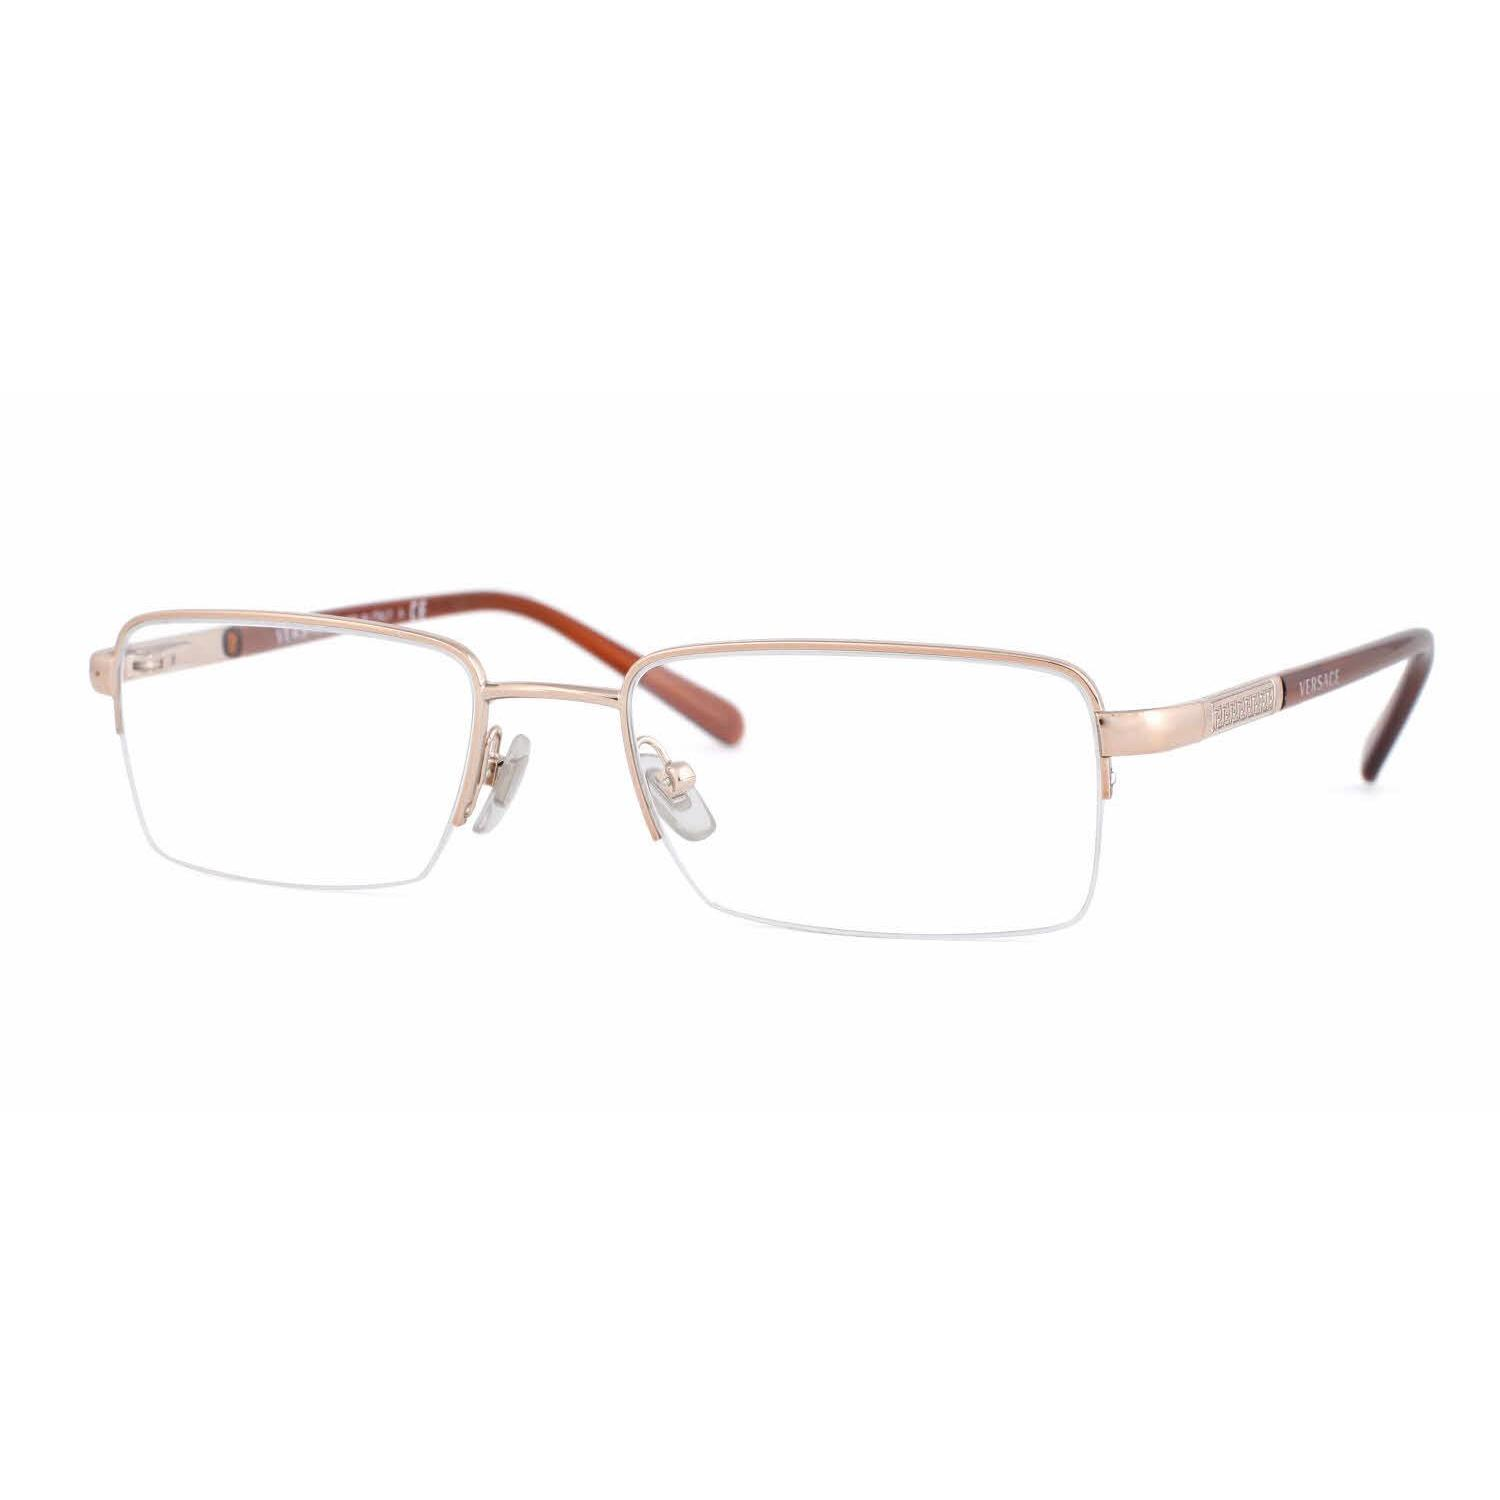 147d9287a348 Shop Versace Mens VE1066 1053 Bronze/Copper Metal Square Eyeglasses ...